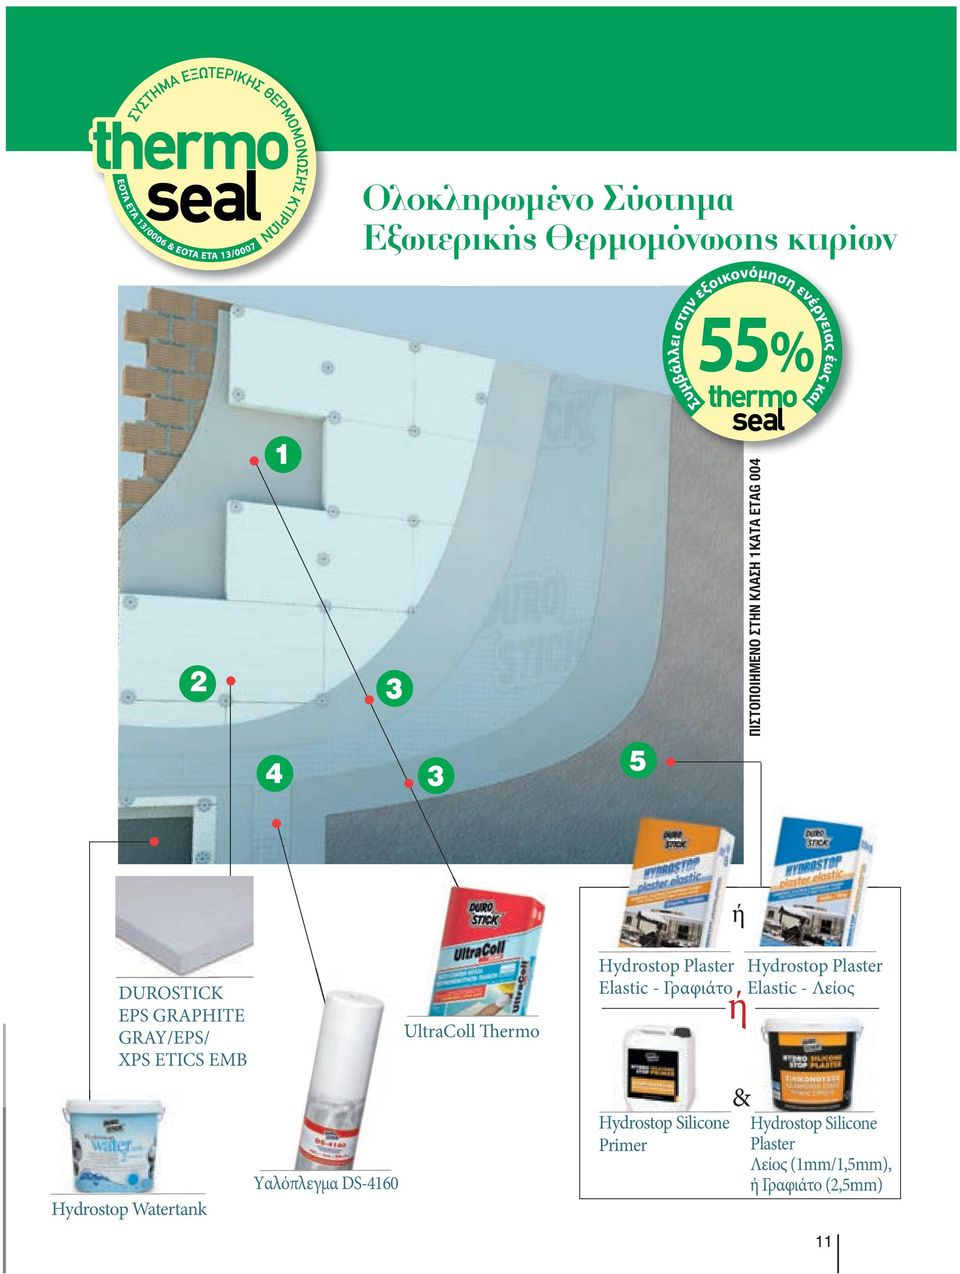 DS-4160 UltraColl Thermo Ηydrostop Plaster Elastic - Γραφιάτο Ηydrostop Silicone Primer ή &